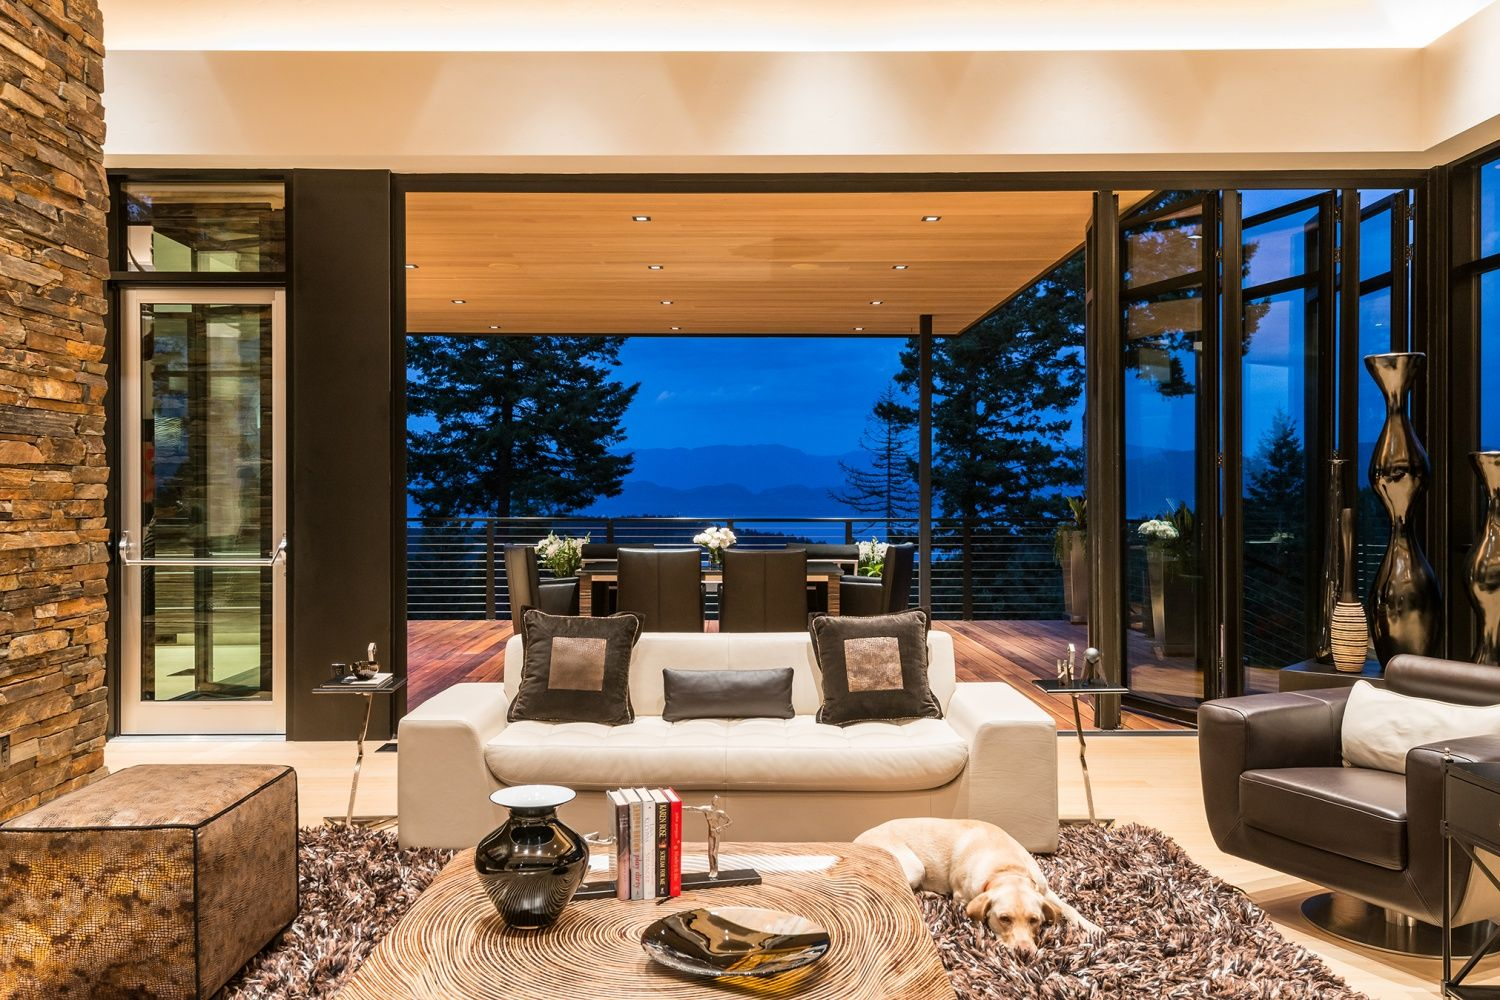 Skyhouse - Lakeside, MT (With images) | Canopy design ... on Outdoor Living Space Builders Near Me  id=32405